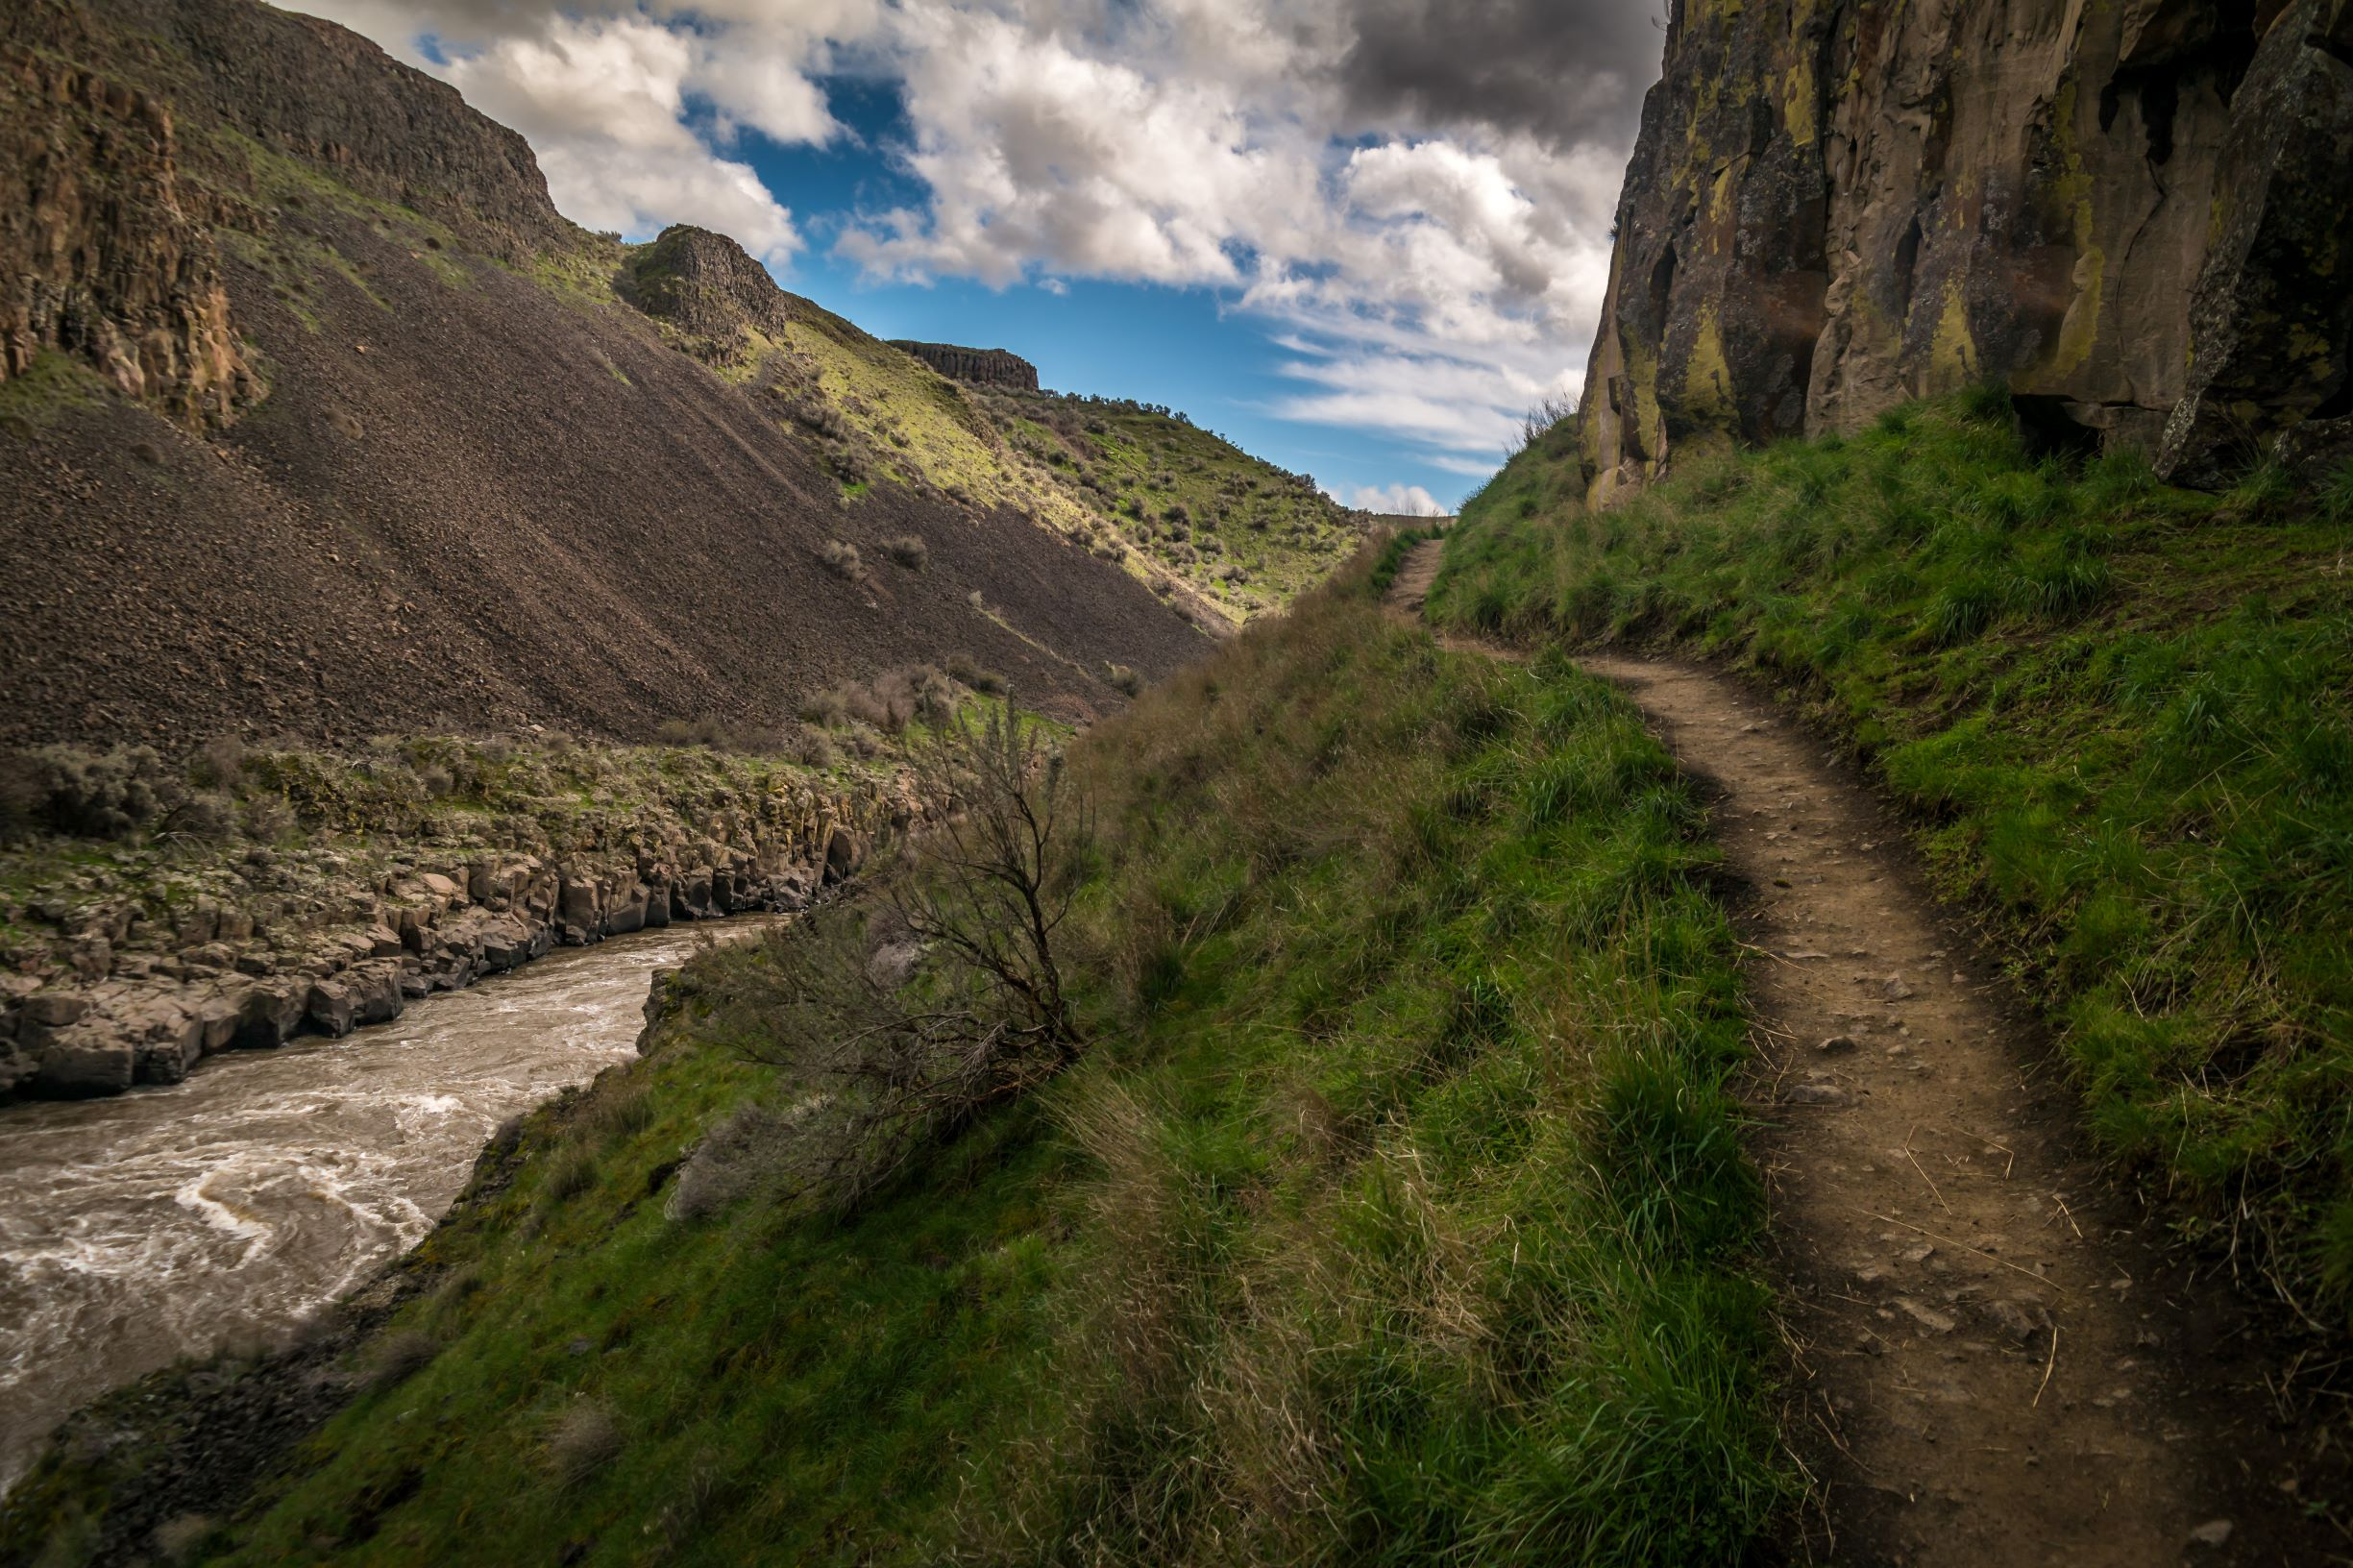 A dirt trail wins through a canyon with a river rushing below to the left, and a steep rocky wall rising above it to the right.